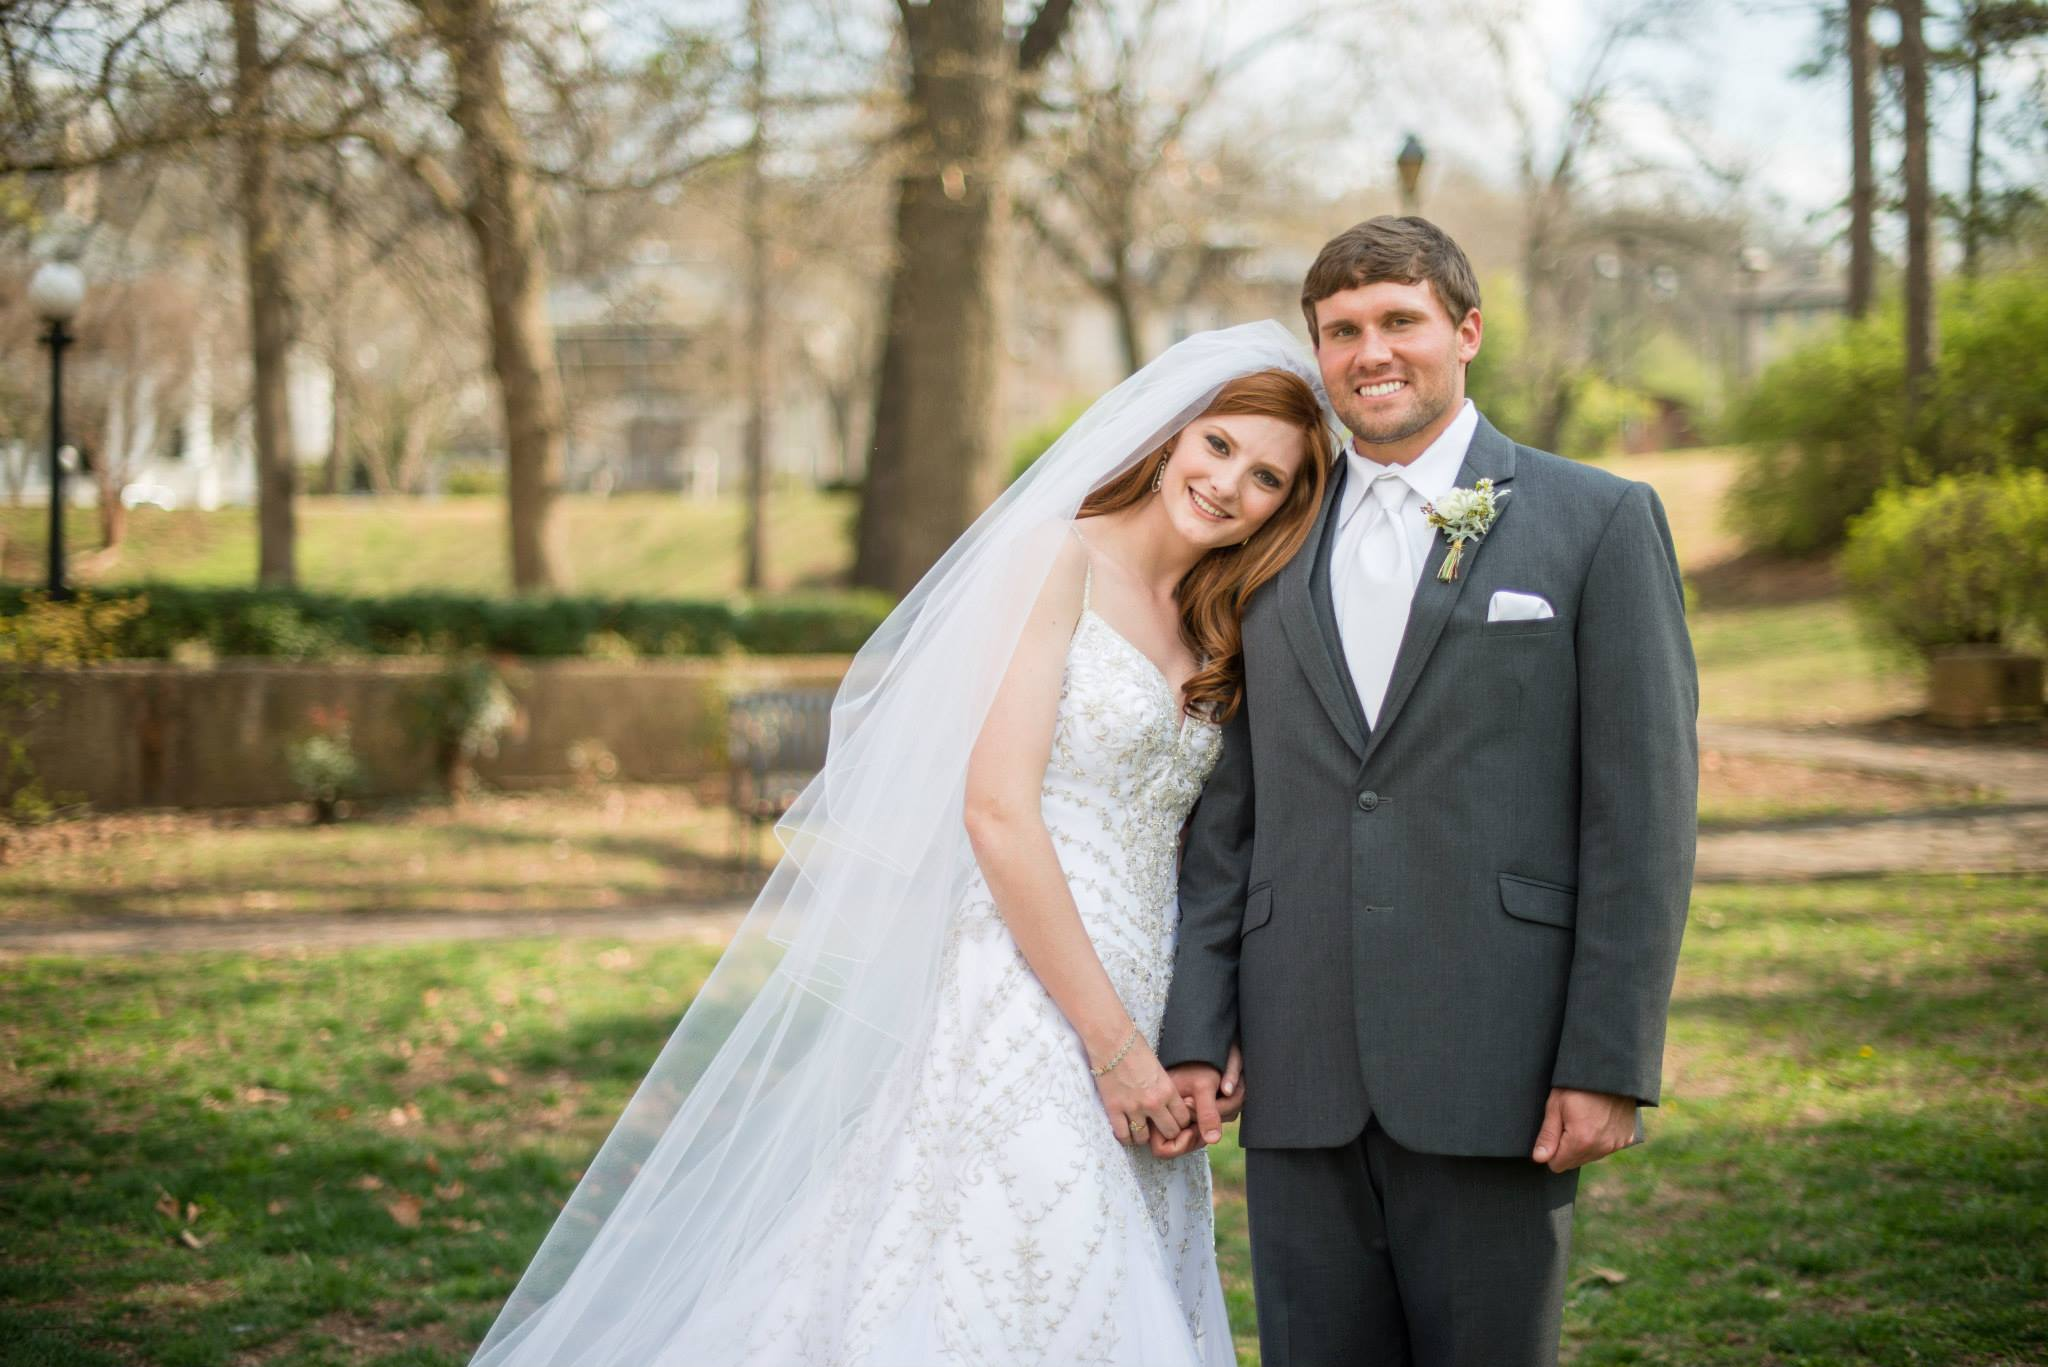 John & Autumn Gunnels on their wedding day March 22, 2014 | image by Rachel Roll Coffey Photography